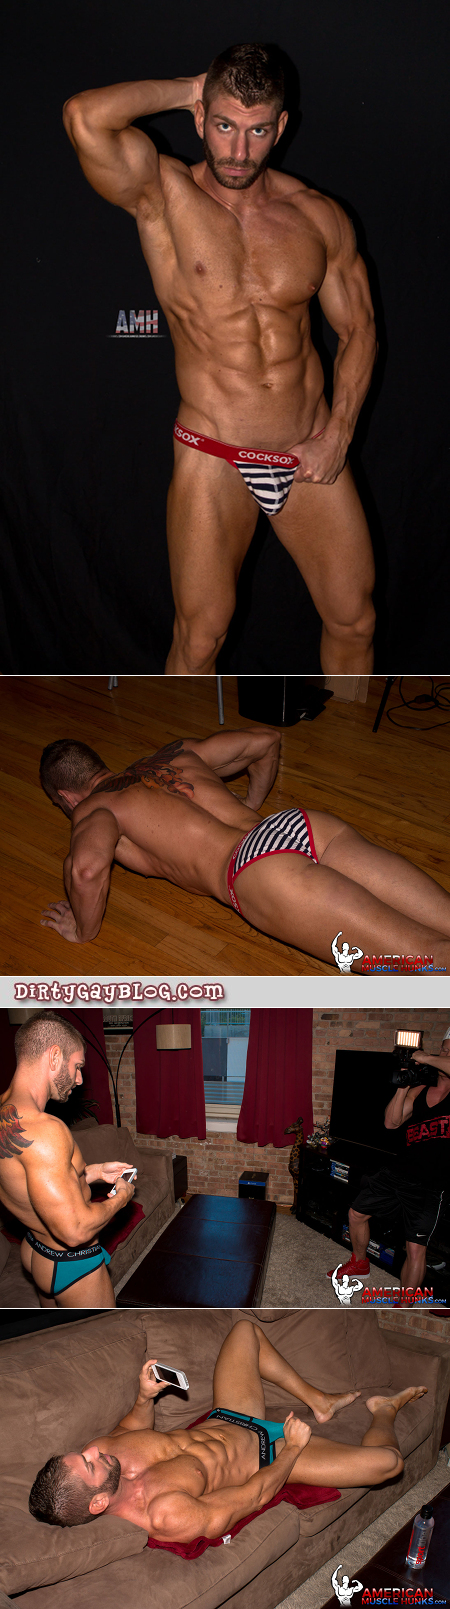 Tan, tattooed muscle stud modeling underwear and his physique.